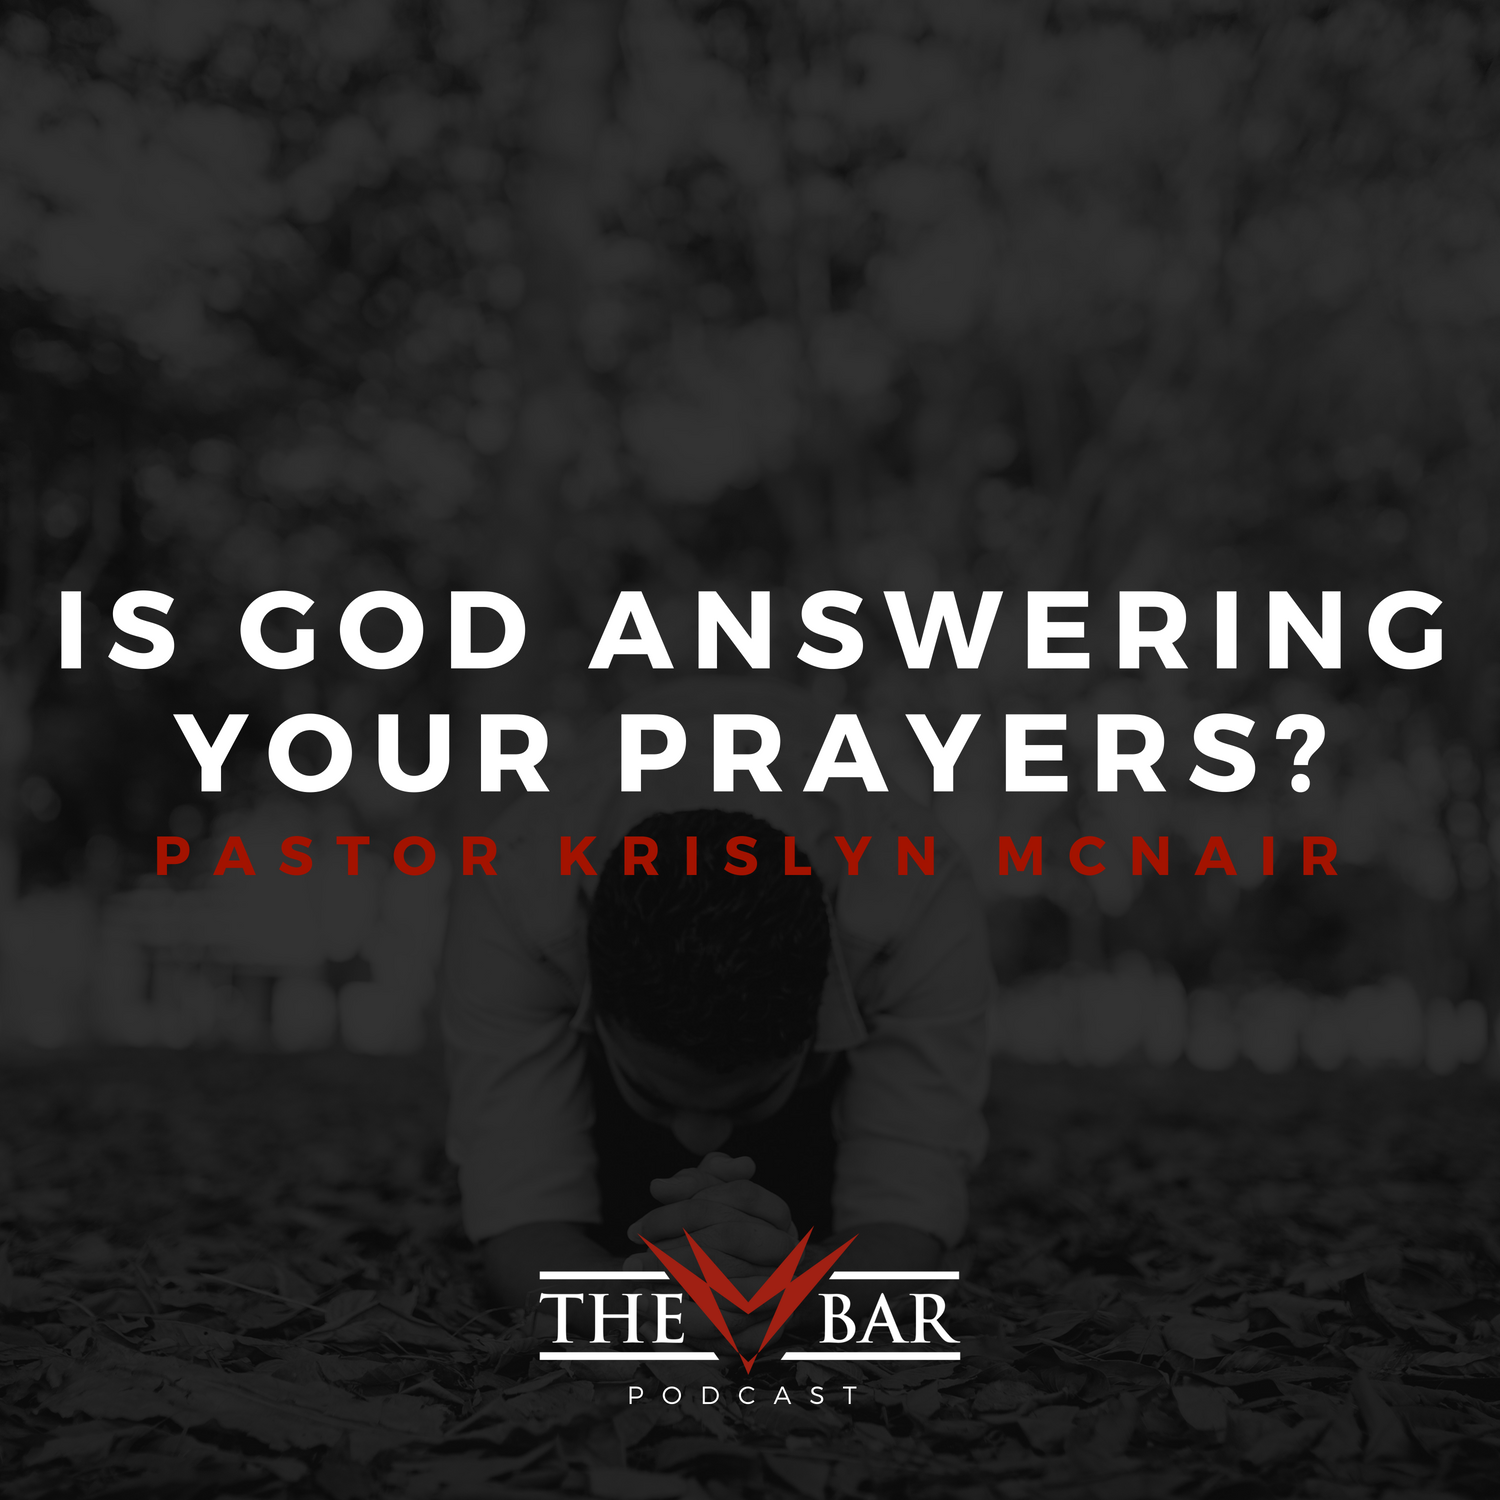 The BAR Podcast - Is God Answering Your Prayers?.png